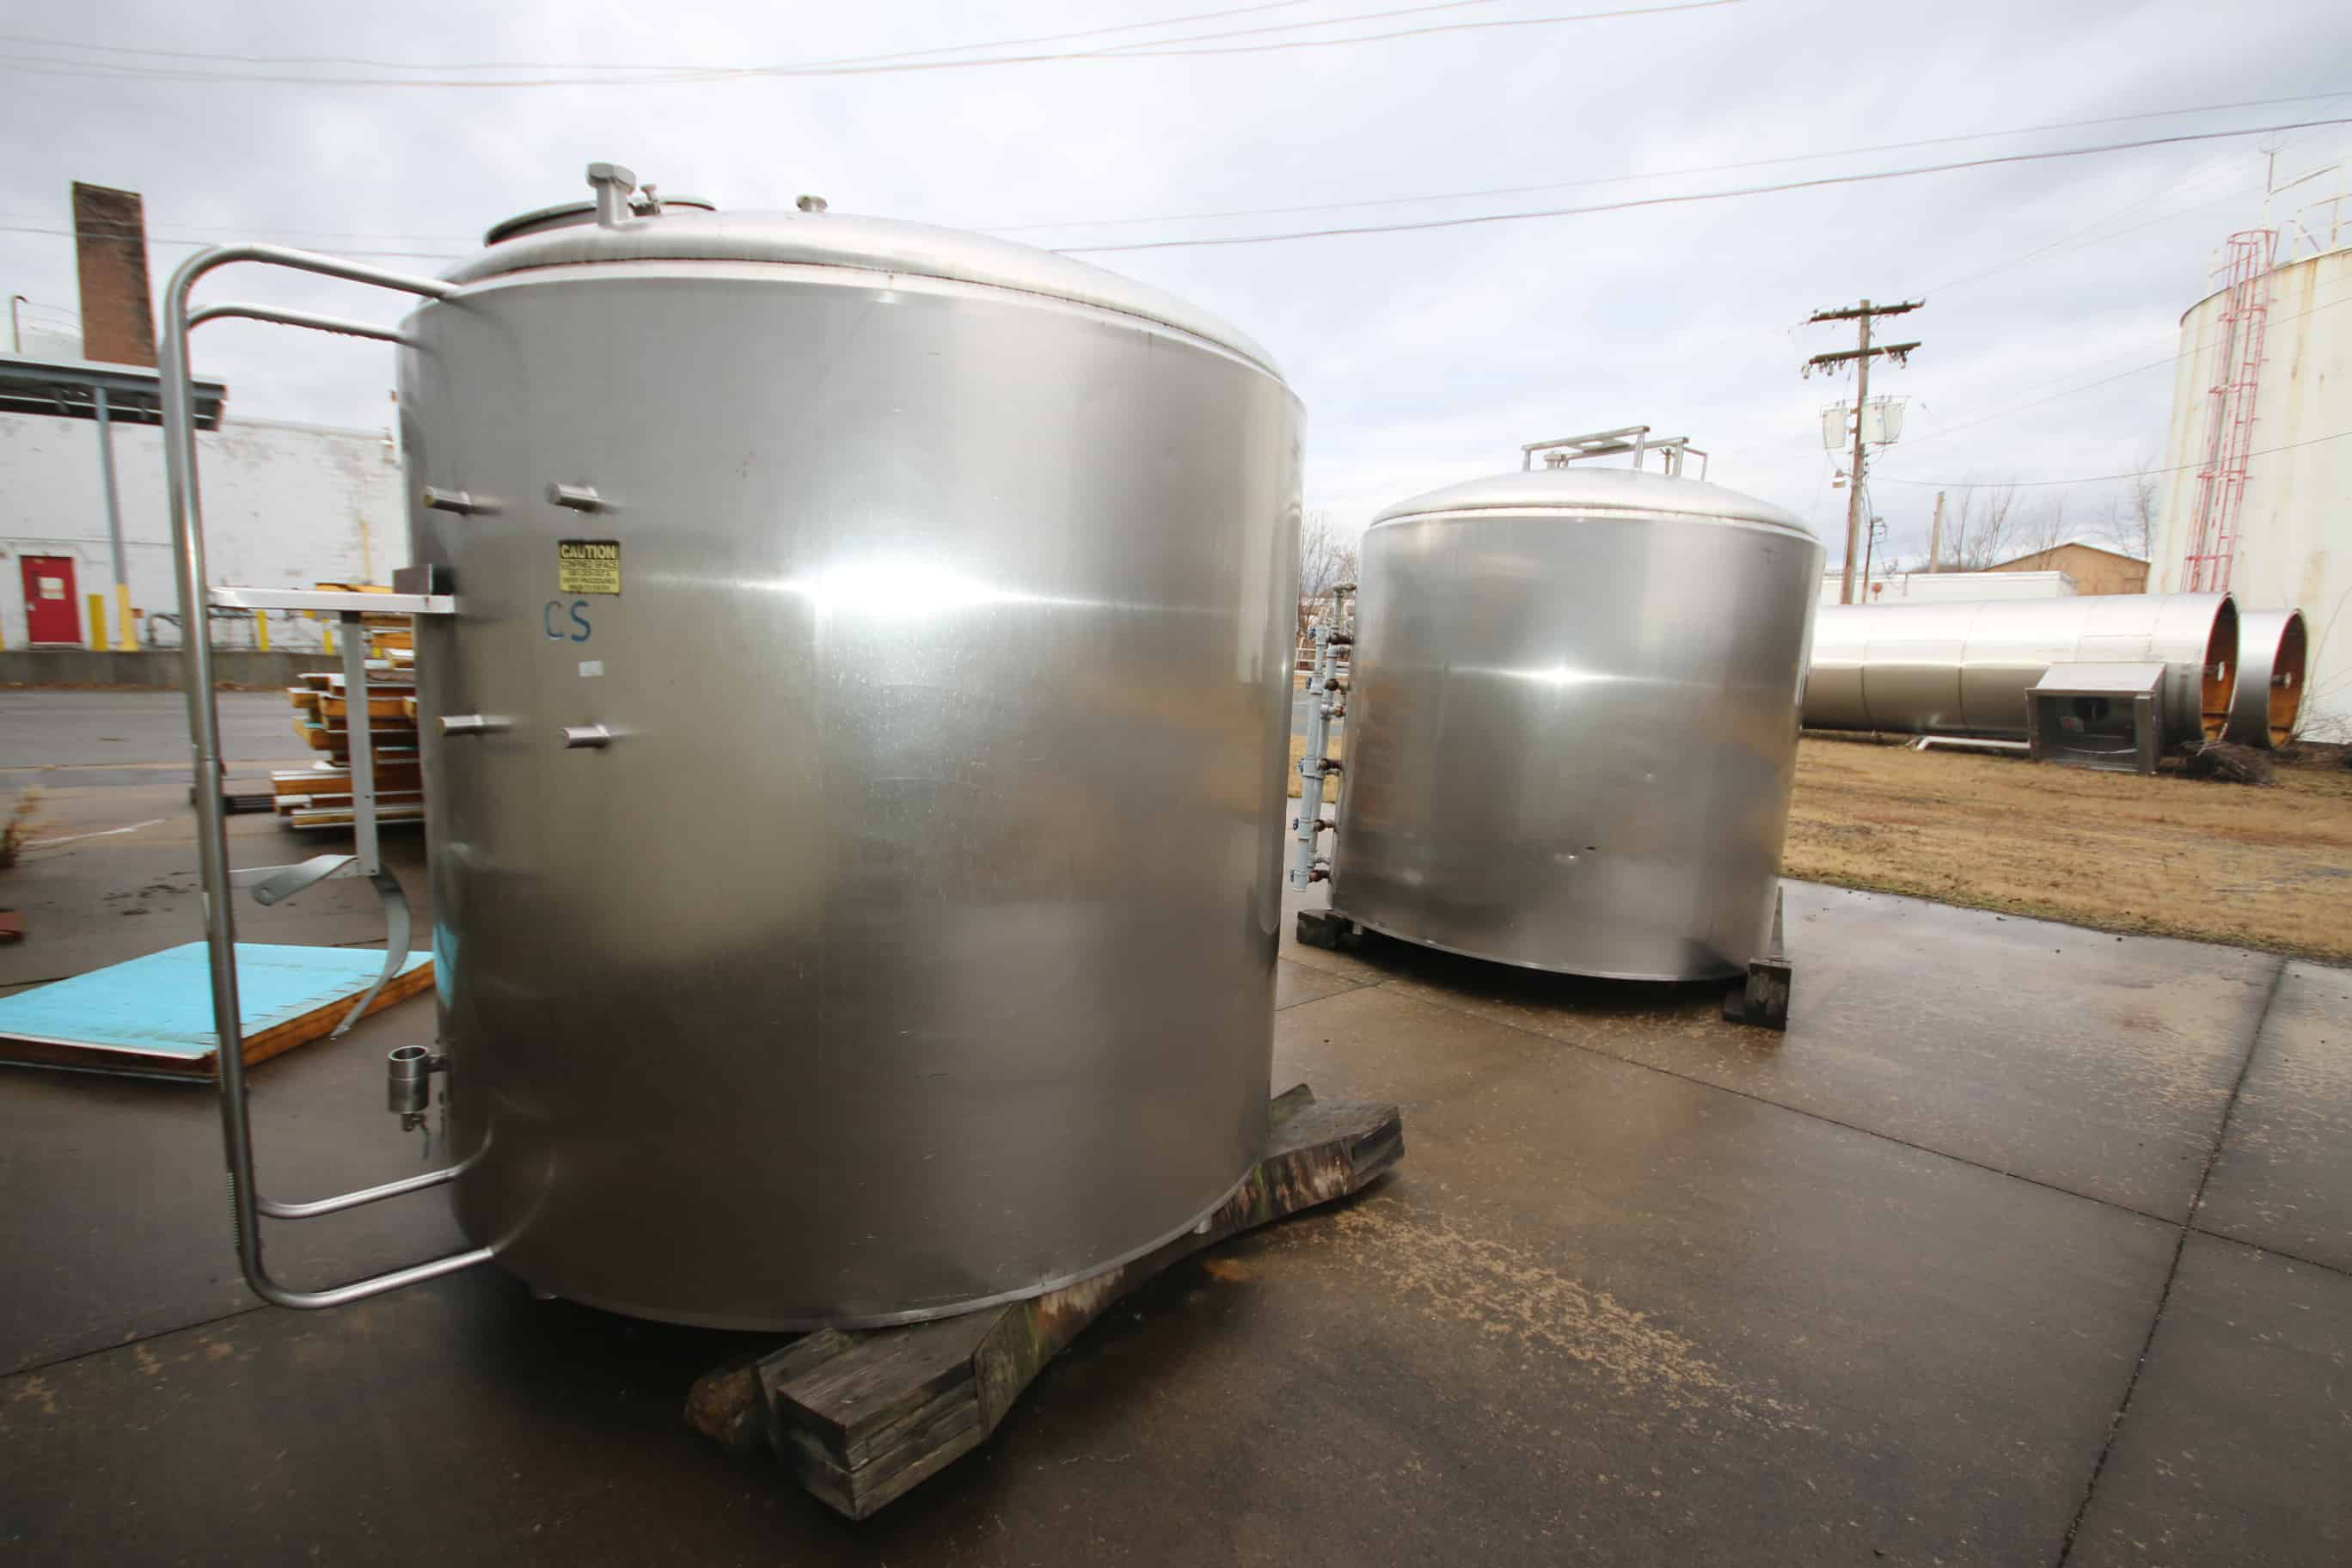 (2) Cherry Burrel 1,500 Gal Dome Top S/S Processors, Model MEPDA, S/N 1500-73-1910 & 11, (Note: No Agitation), (Uninstalled)